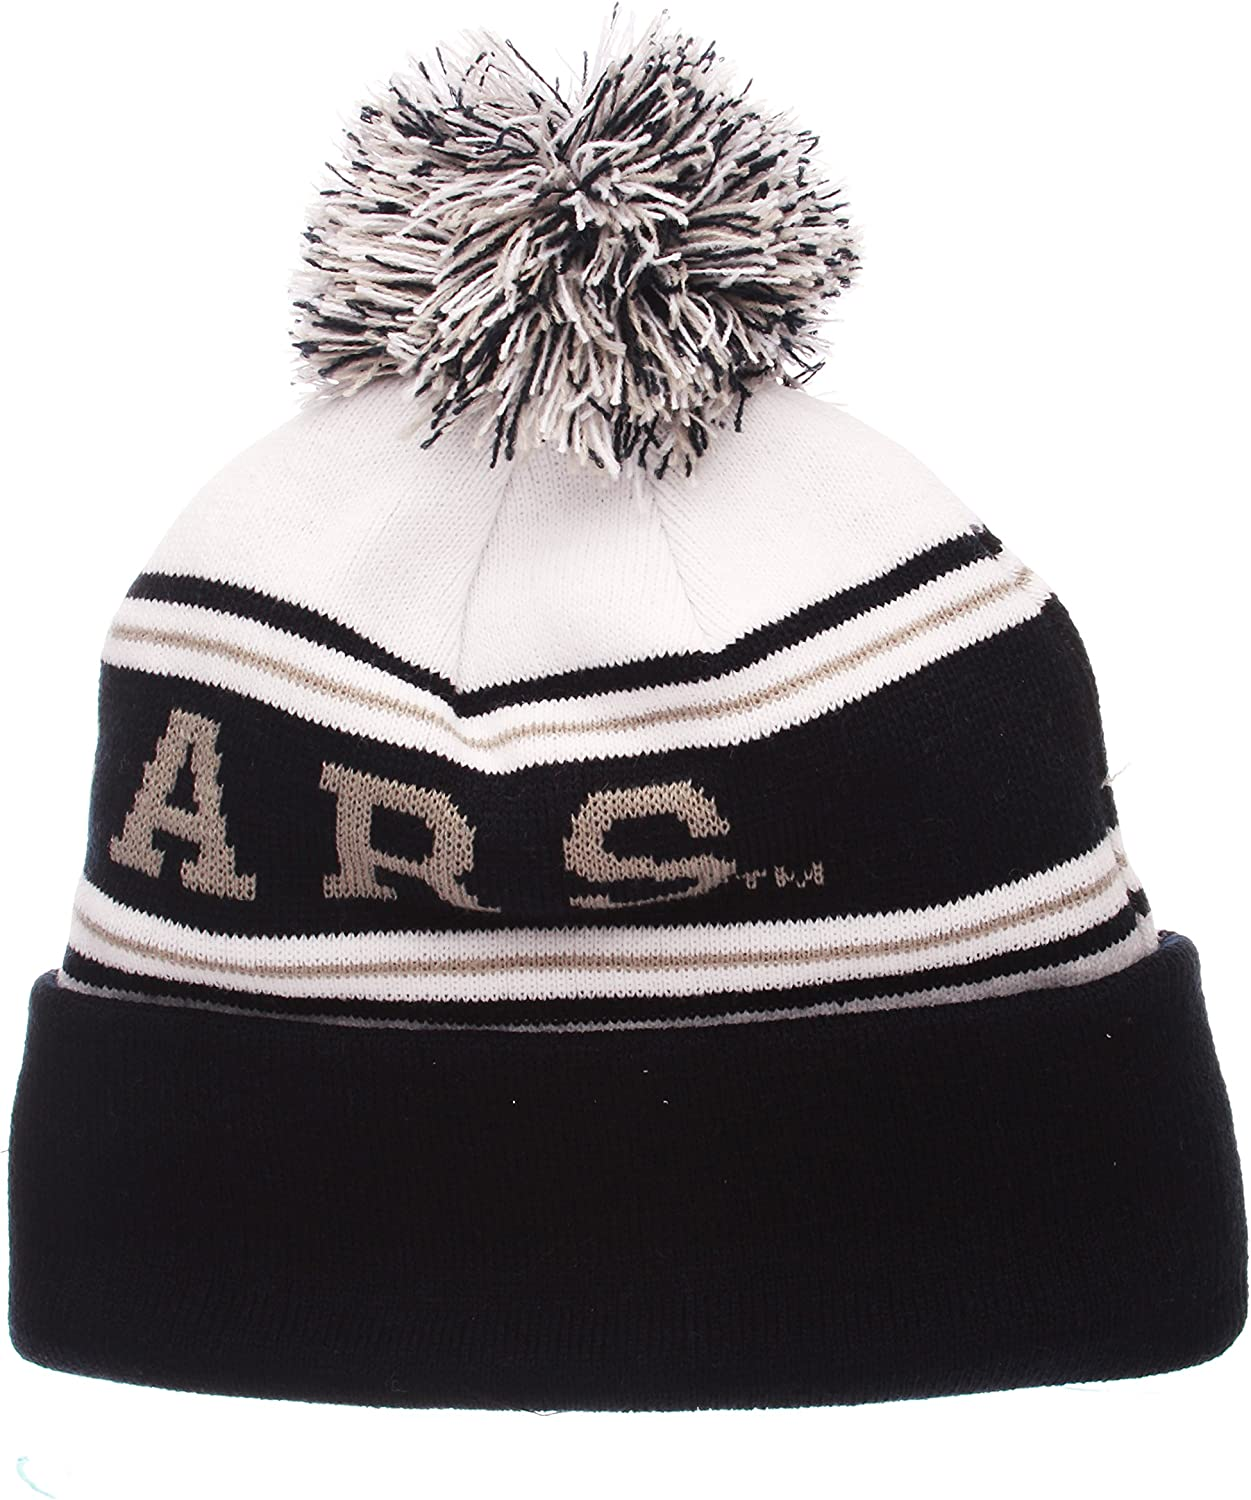 NCAA ZHATS Fashion Cuffed Winter Knit Cap Zephyr Finish Line Arctic Cuff Beanie Hat with Pom Pom